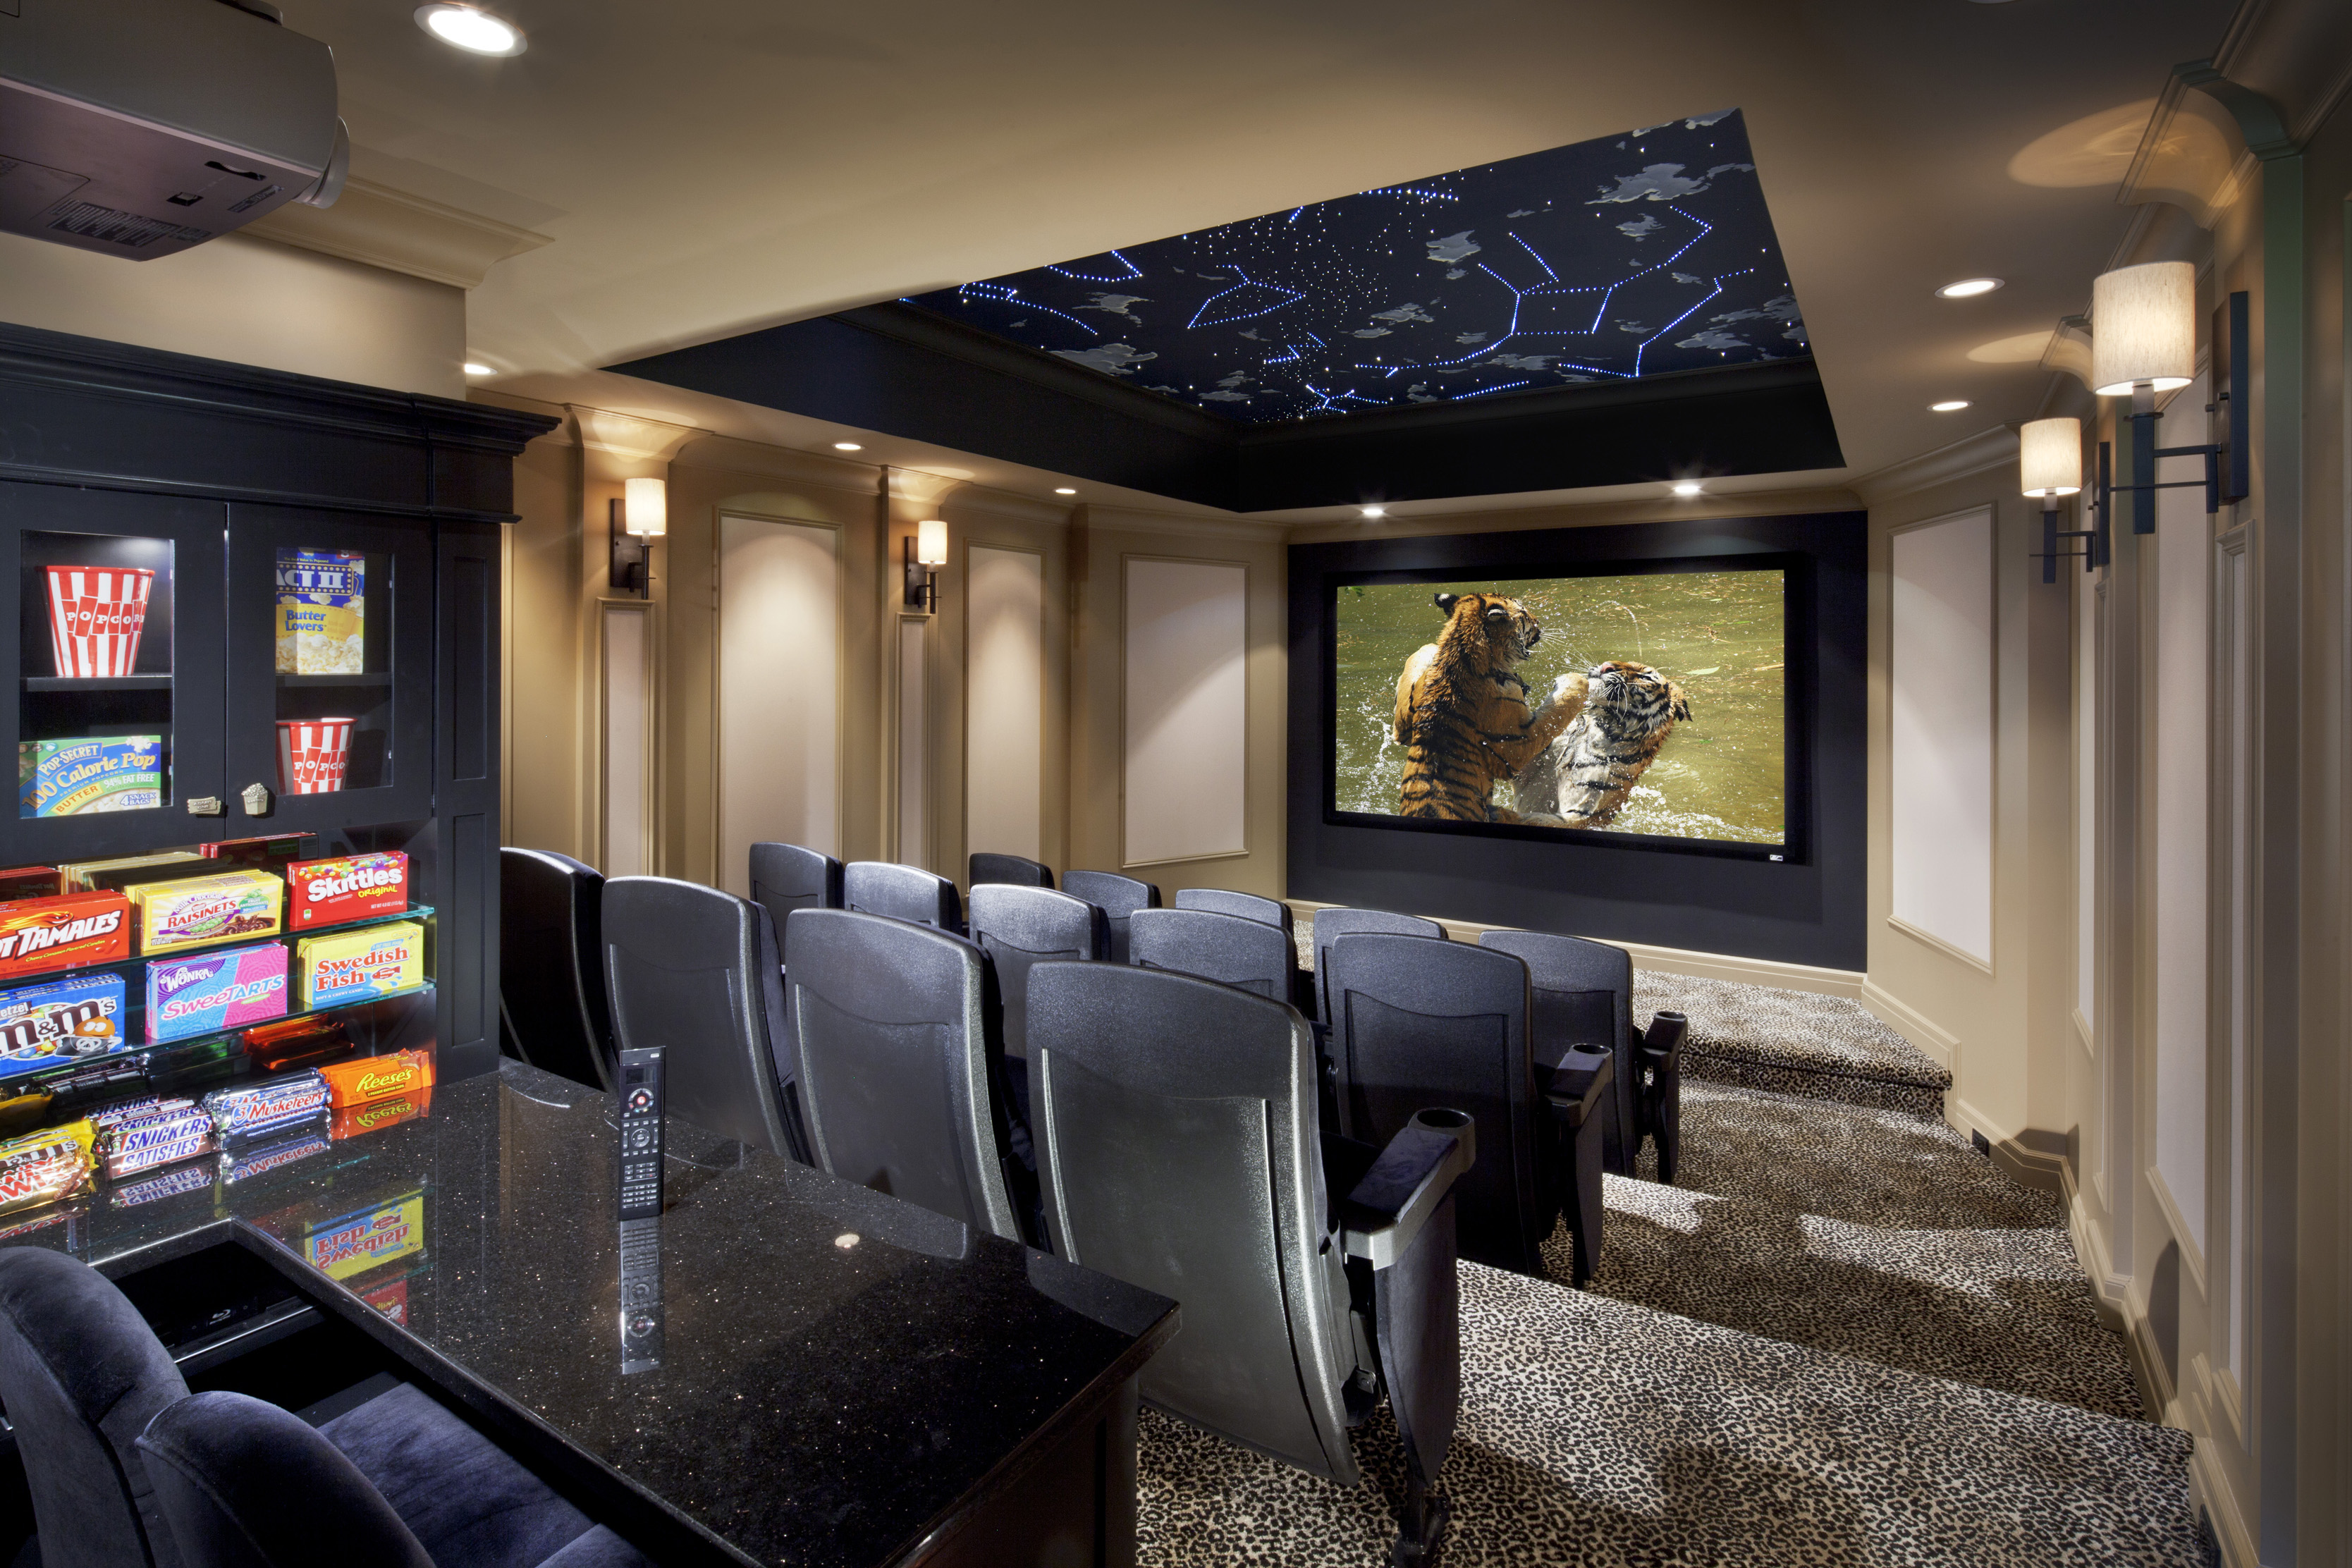 cedia 2012 best home theaterhome theater with a ceiling that reflects the evening sky - Home Theater Design Group